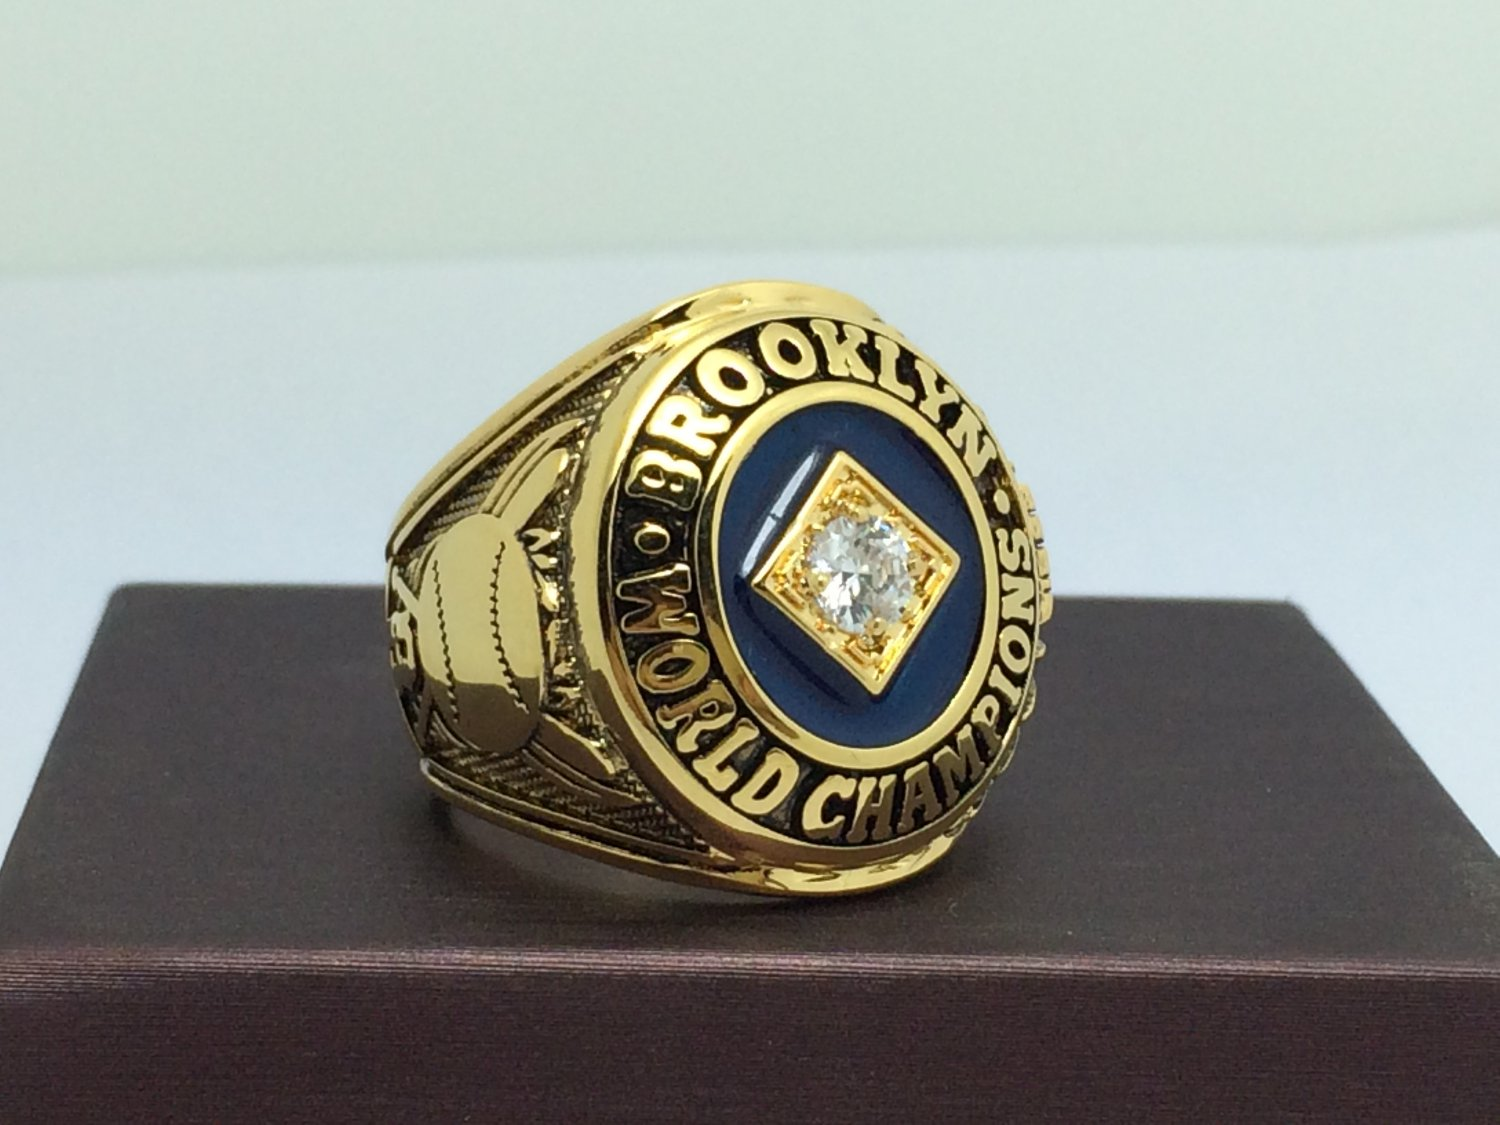 1955  Los Angeles Dodgers world series Championship Ring 9-13 Size With wooden box